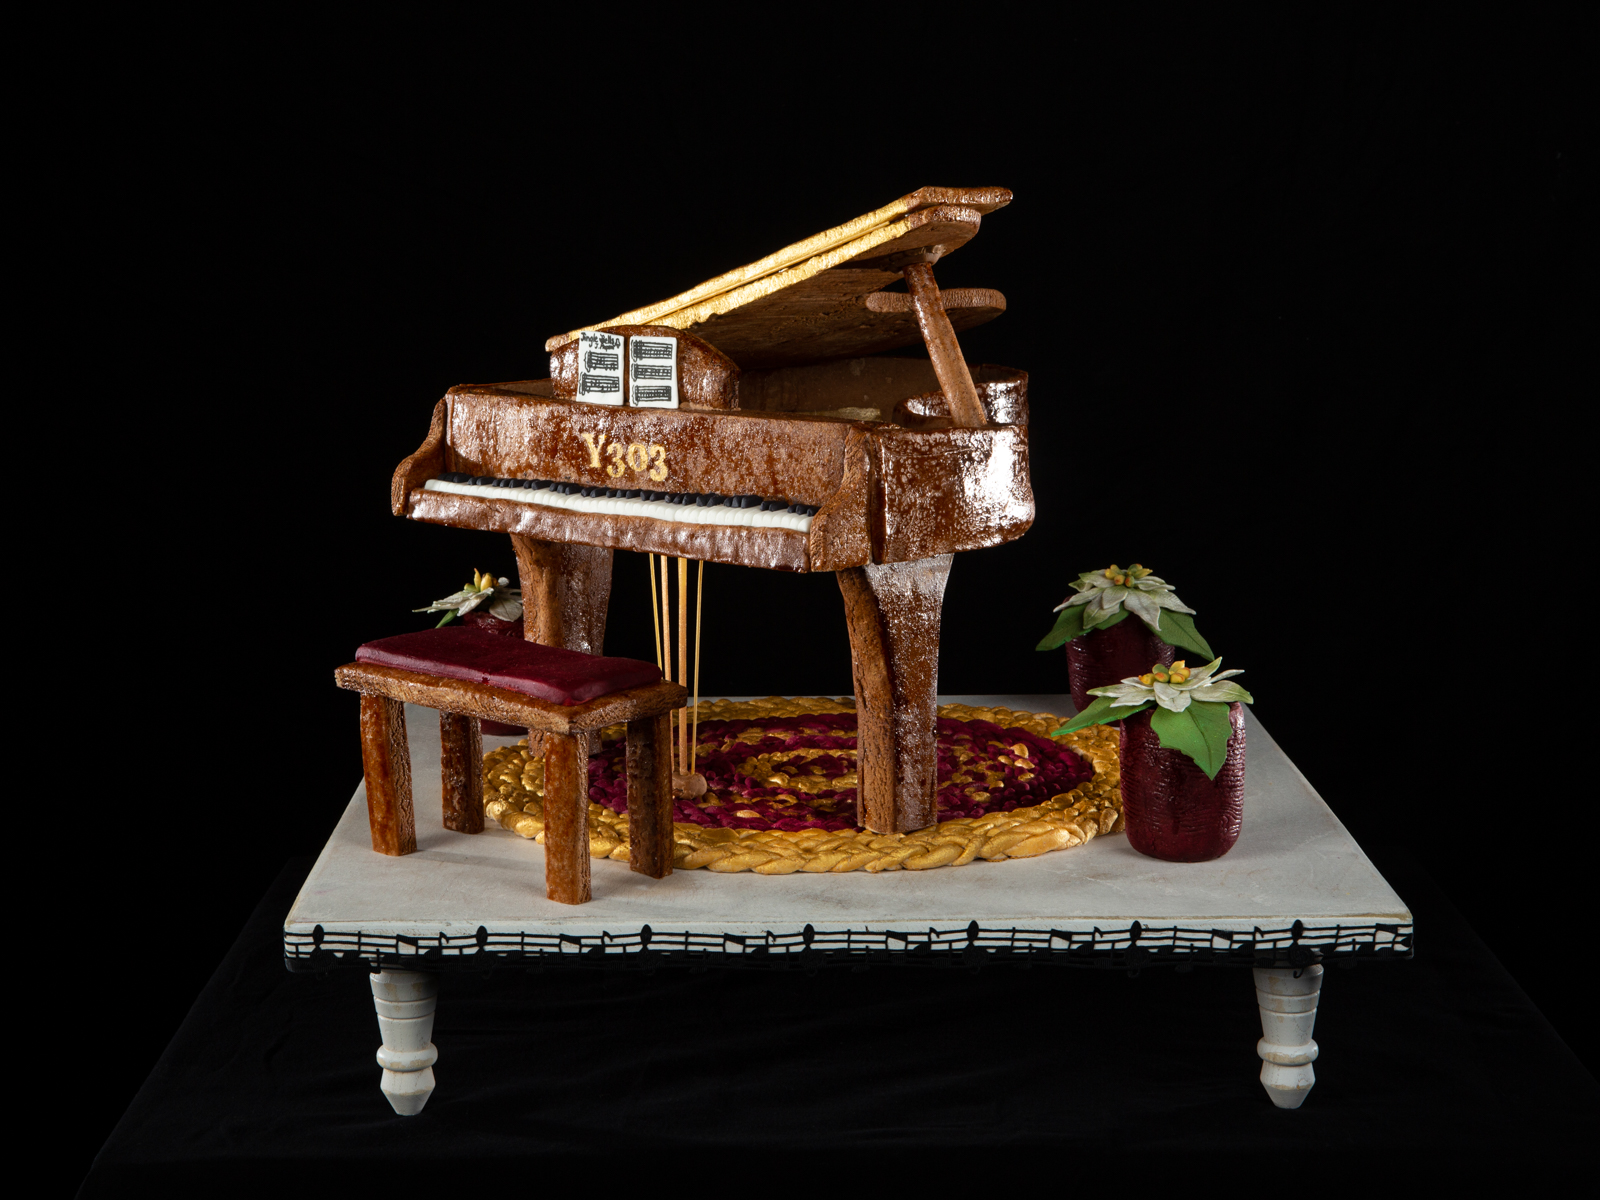 National Gingerbread House Competition entry